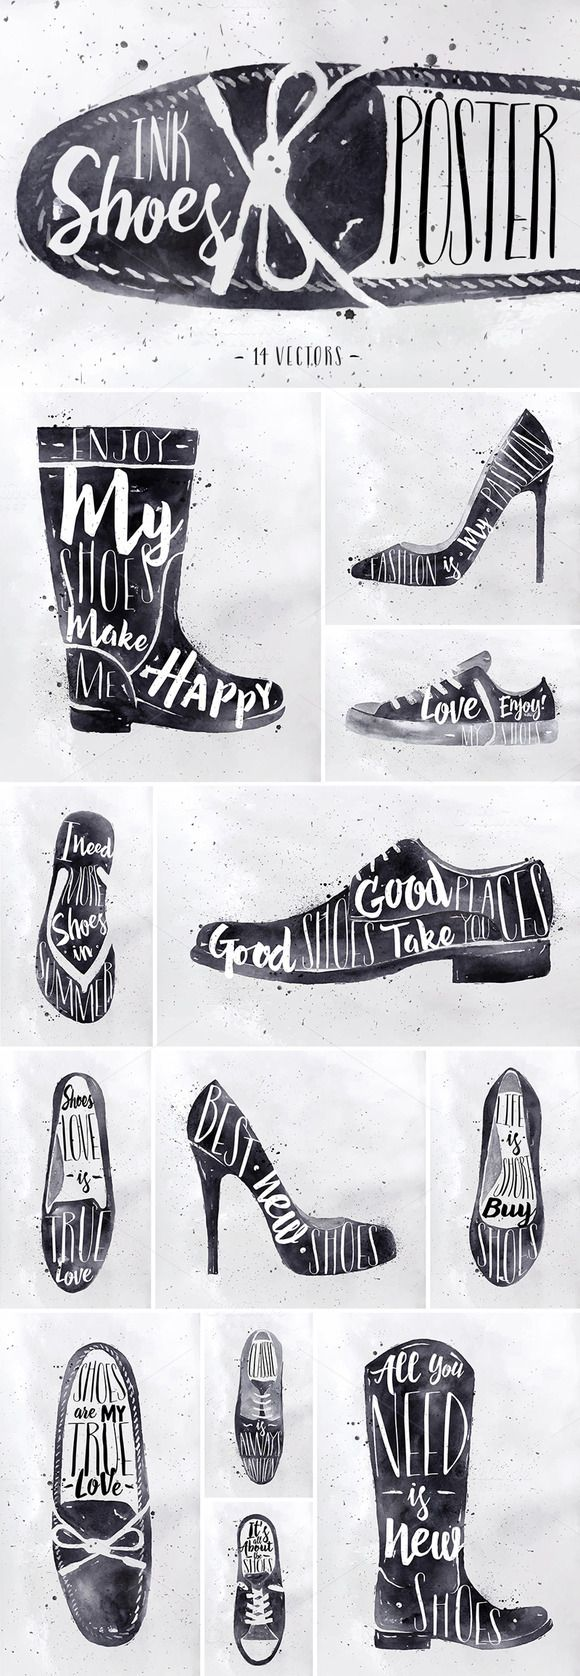 Ink Shoes Poster by Anna on Creative Market